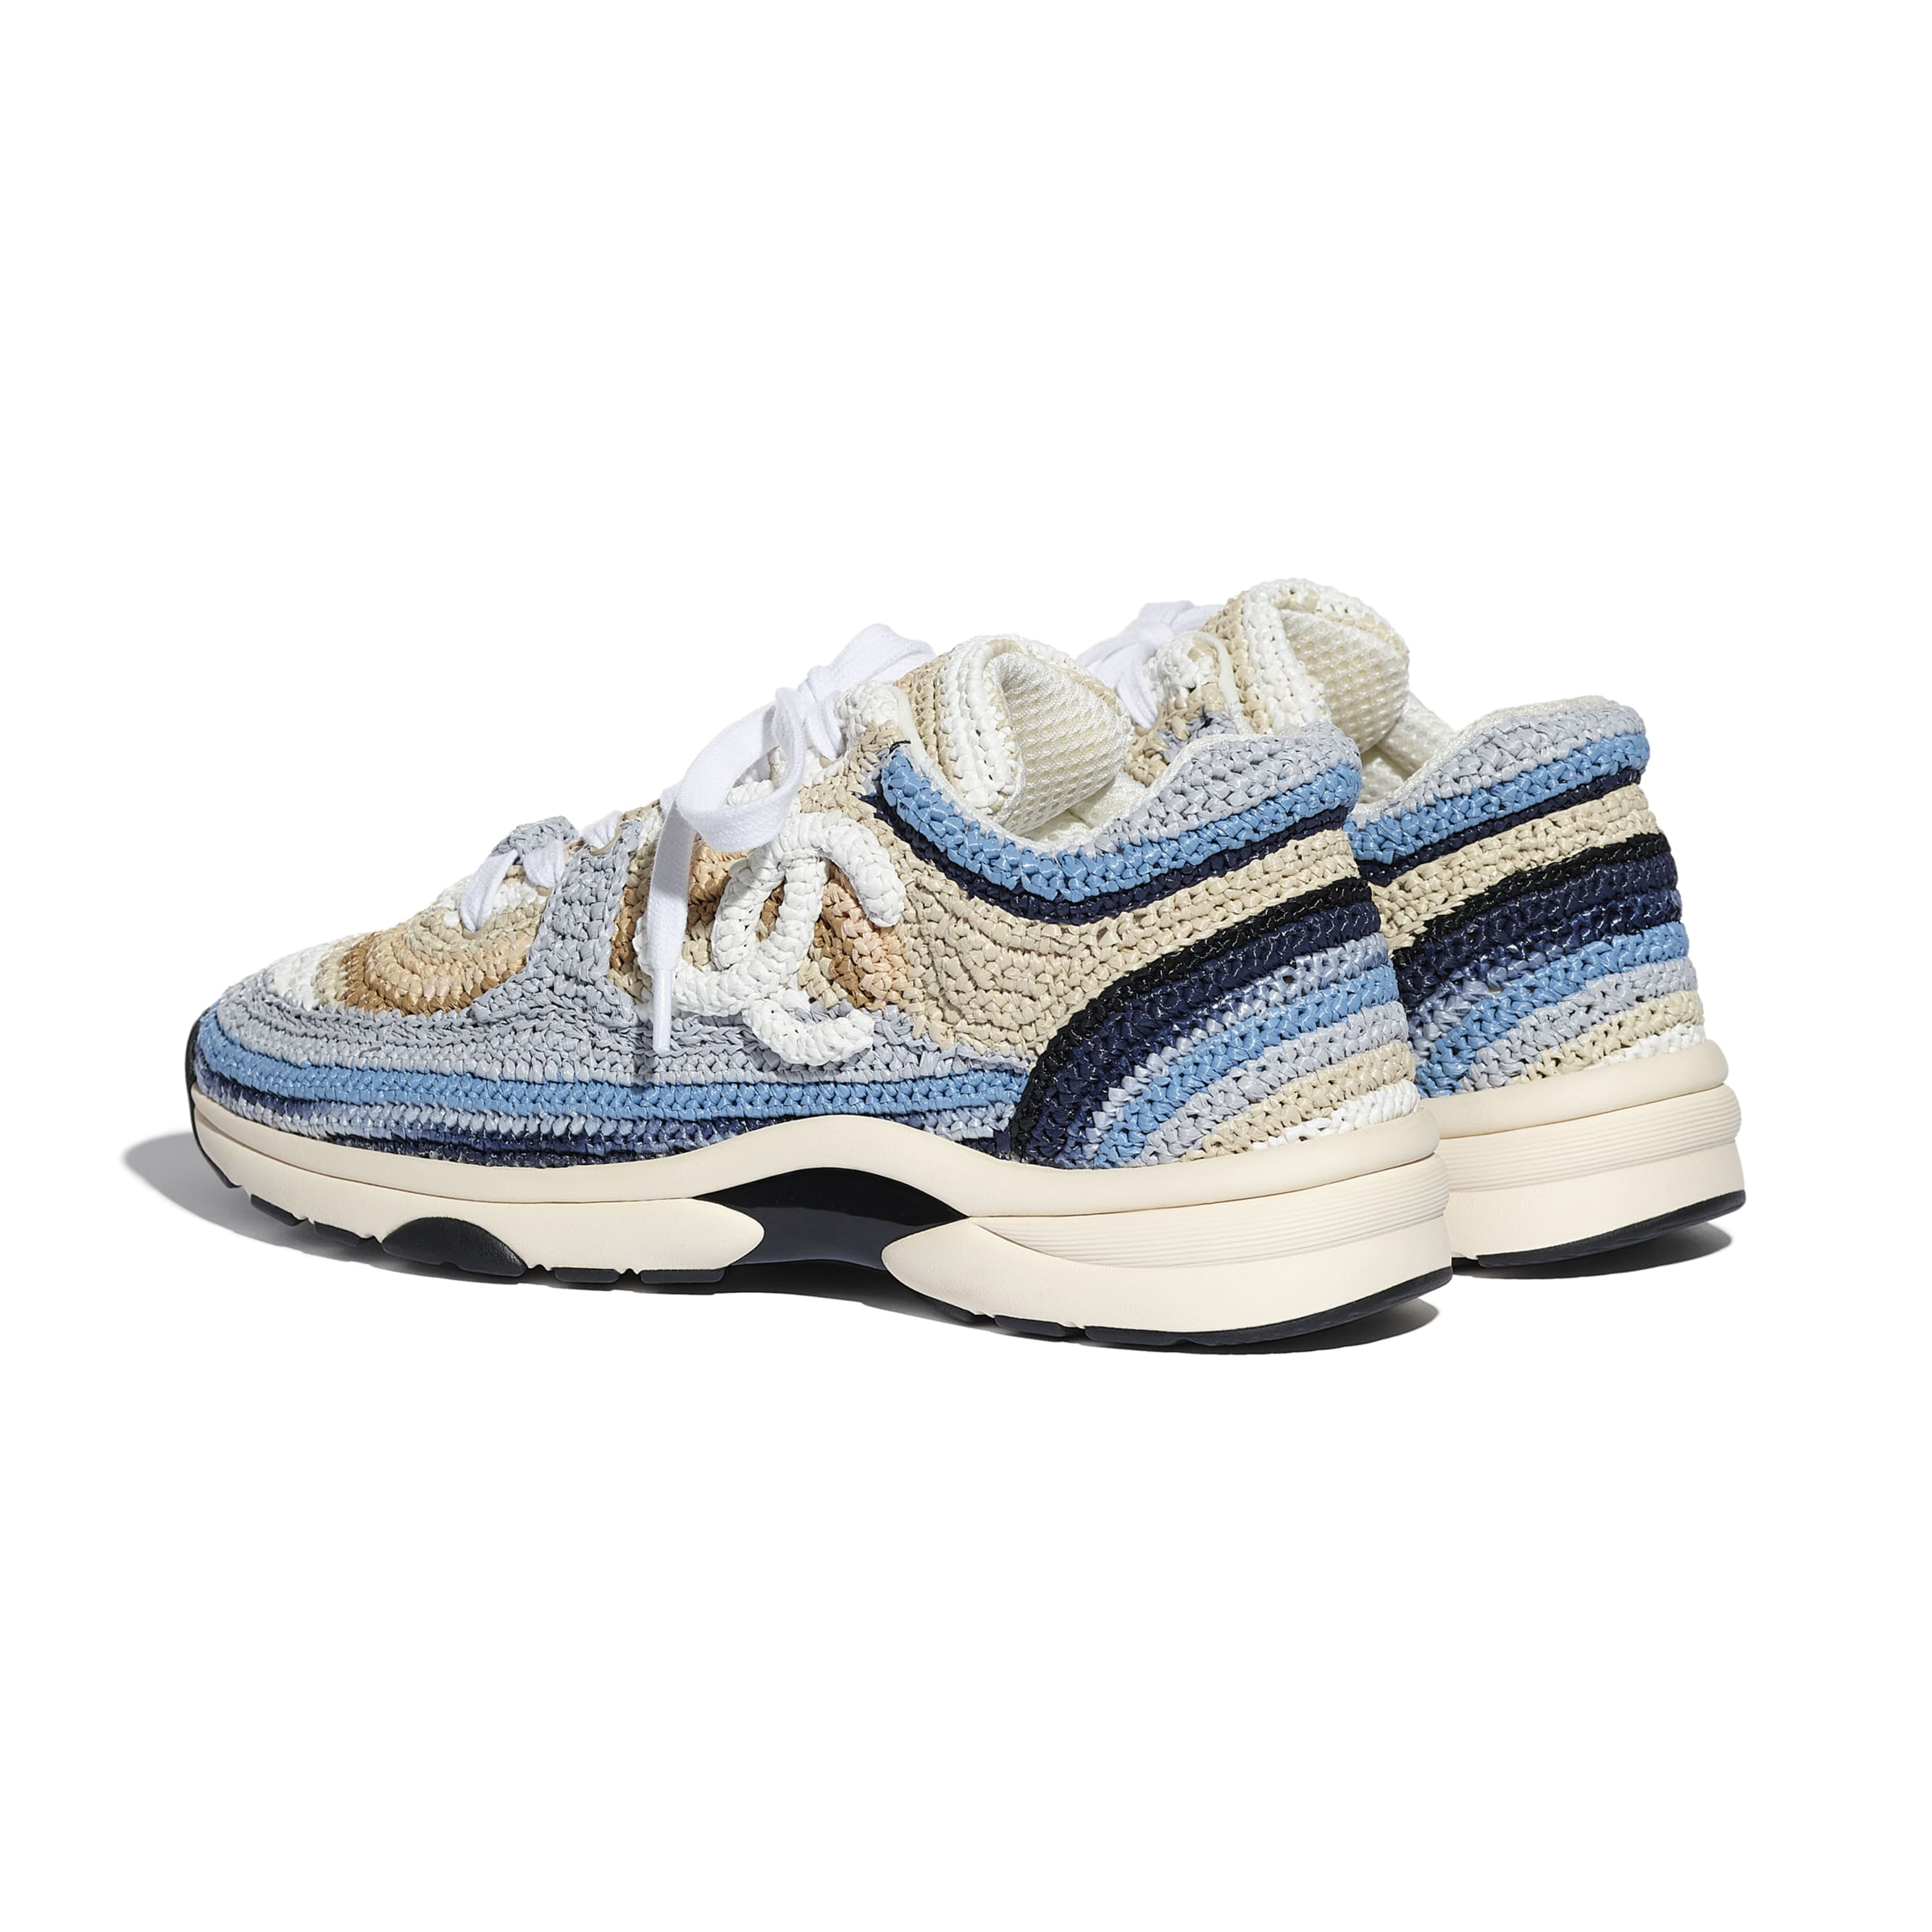 Trainers - Blue & Beige - Braided Raffia - CHANEL - Other view - see standard sized version